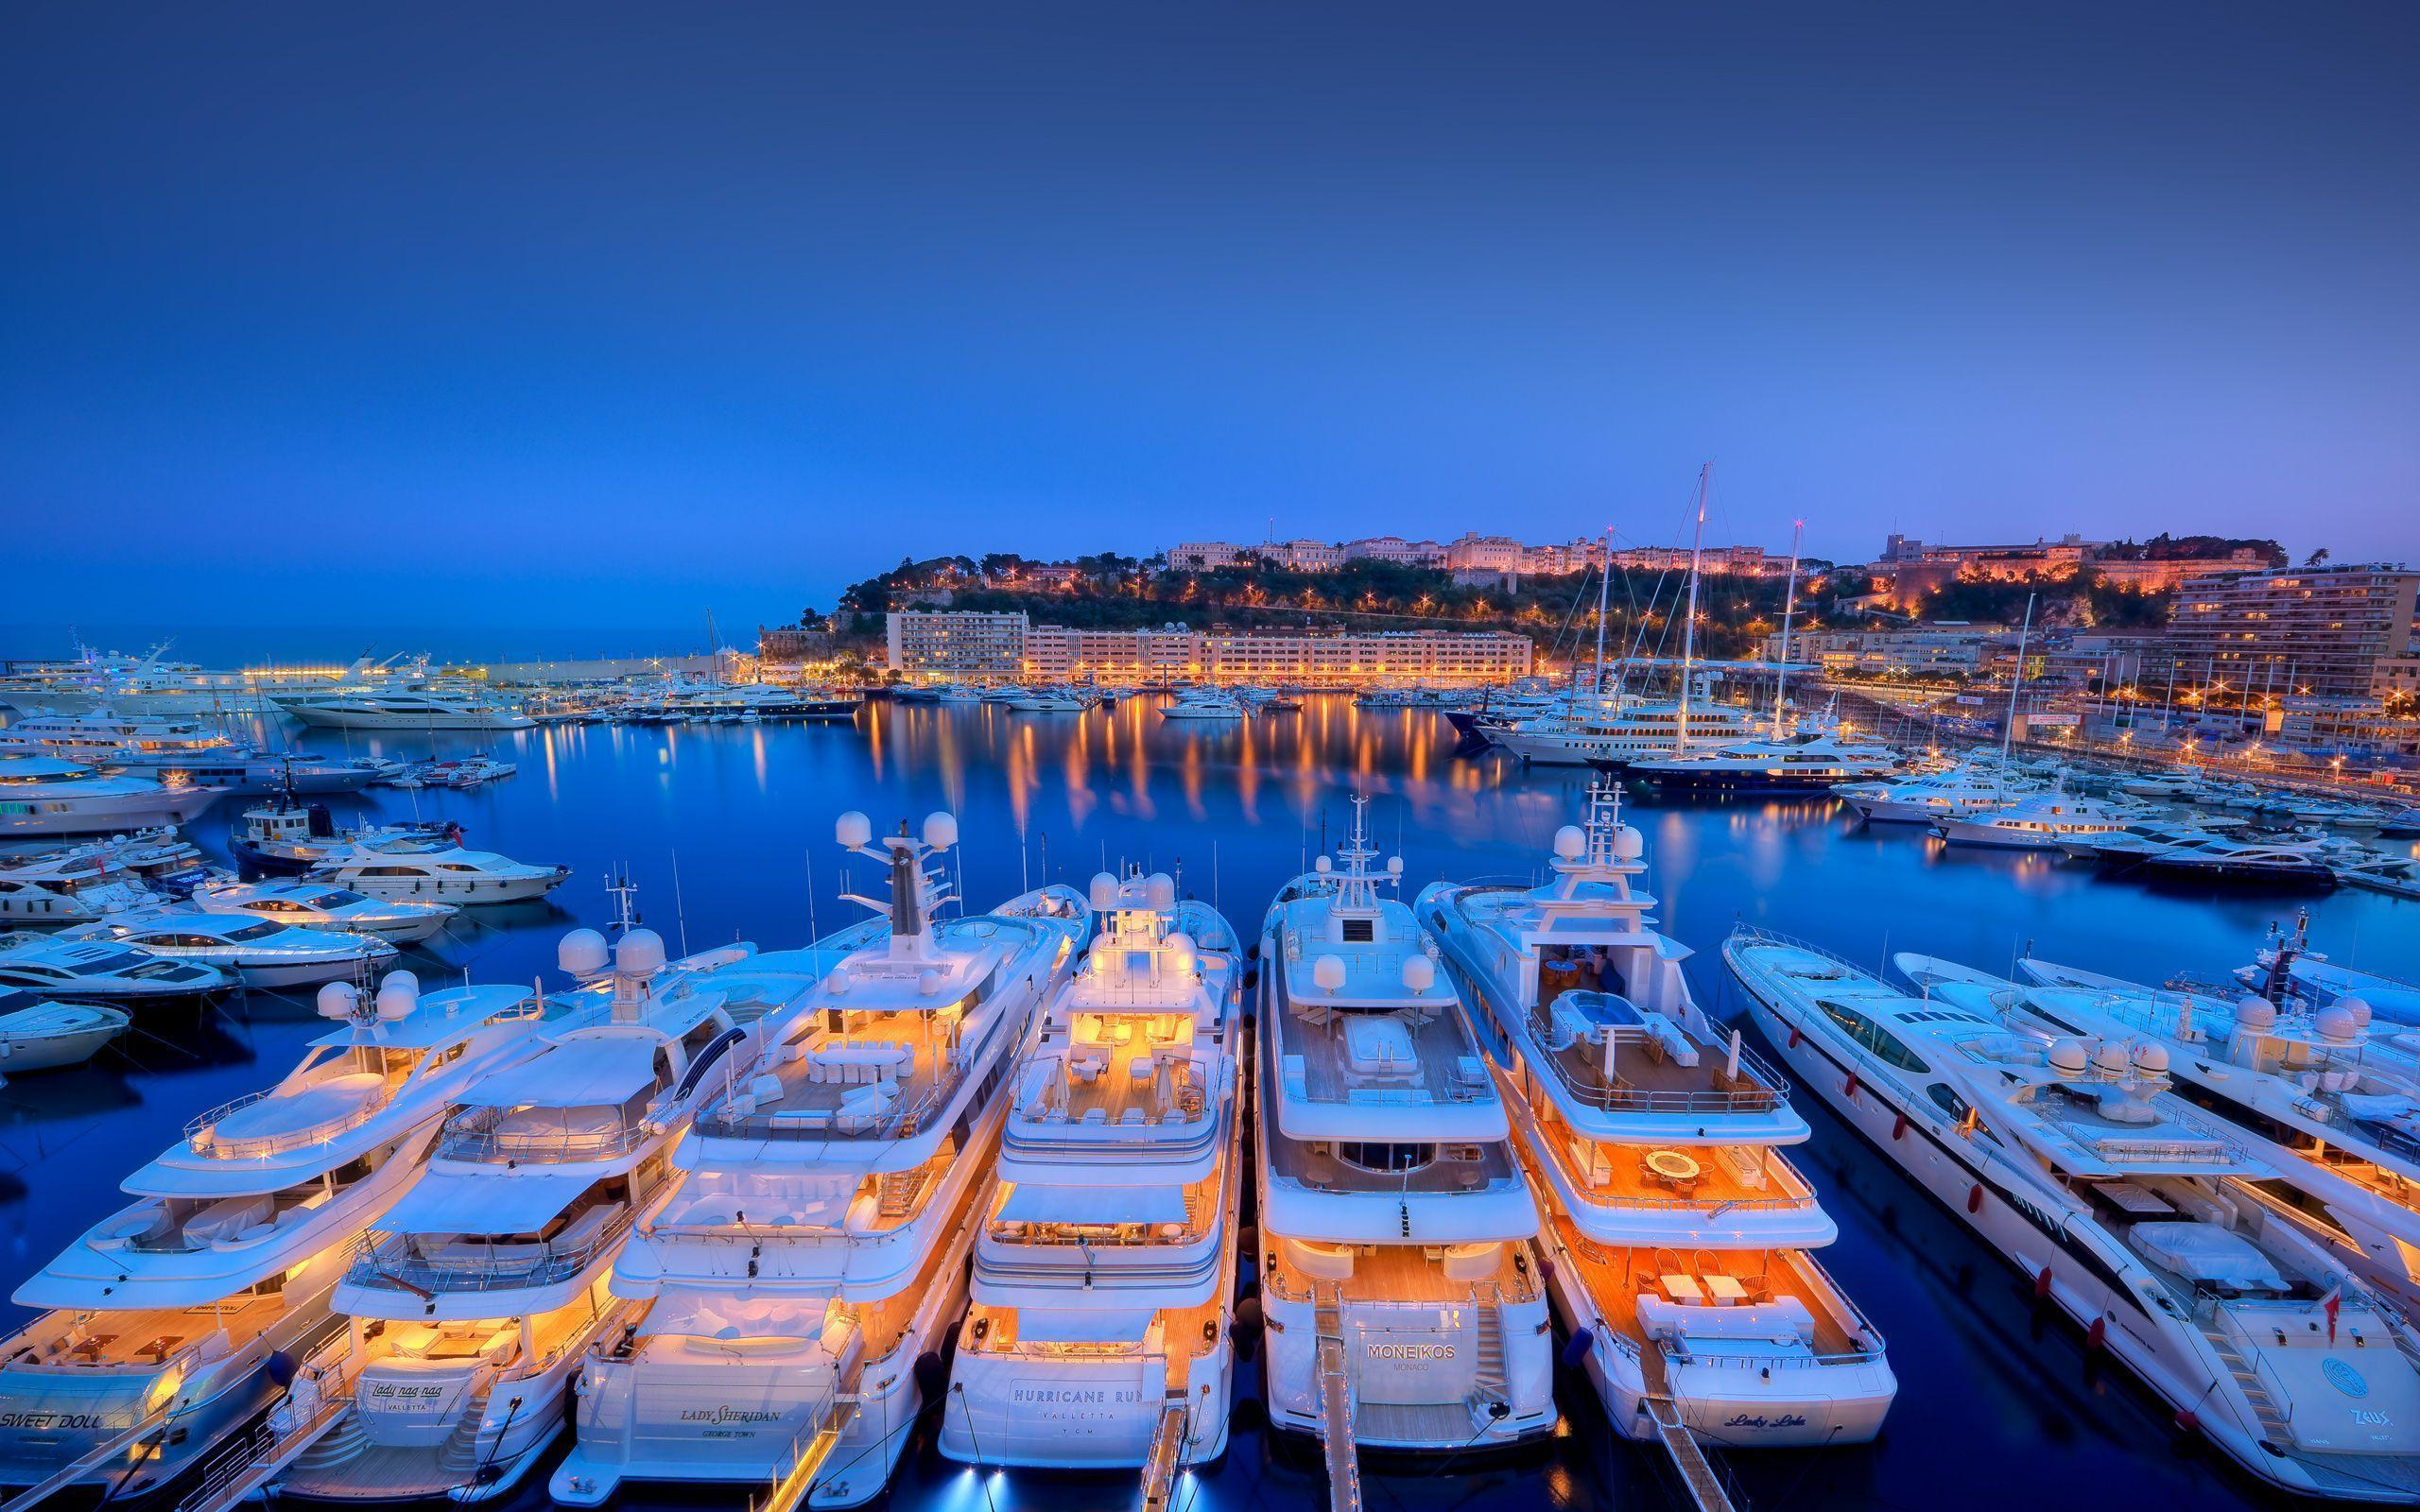 2560x1600 Port, Monaco, Yachts Wallpapers and Pictures, Photos